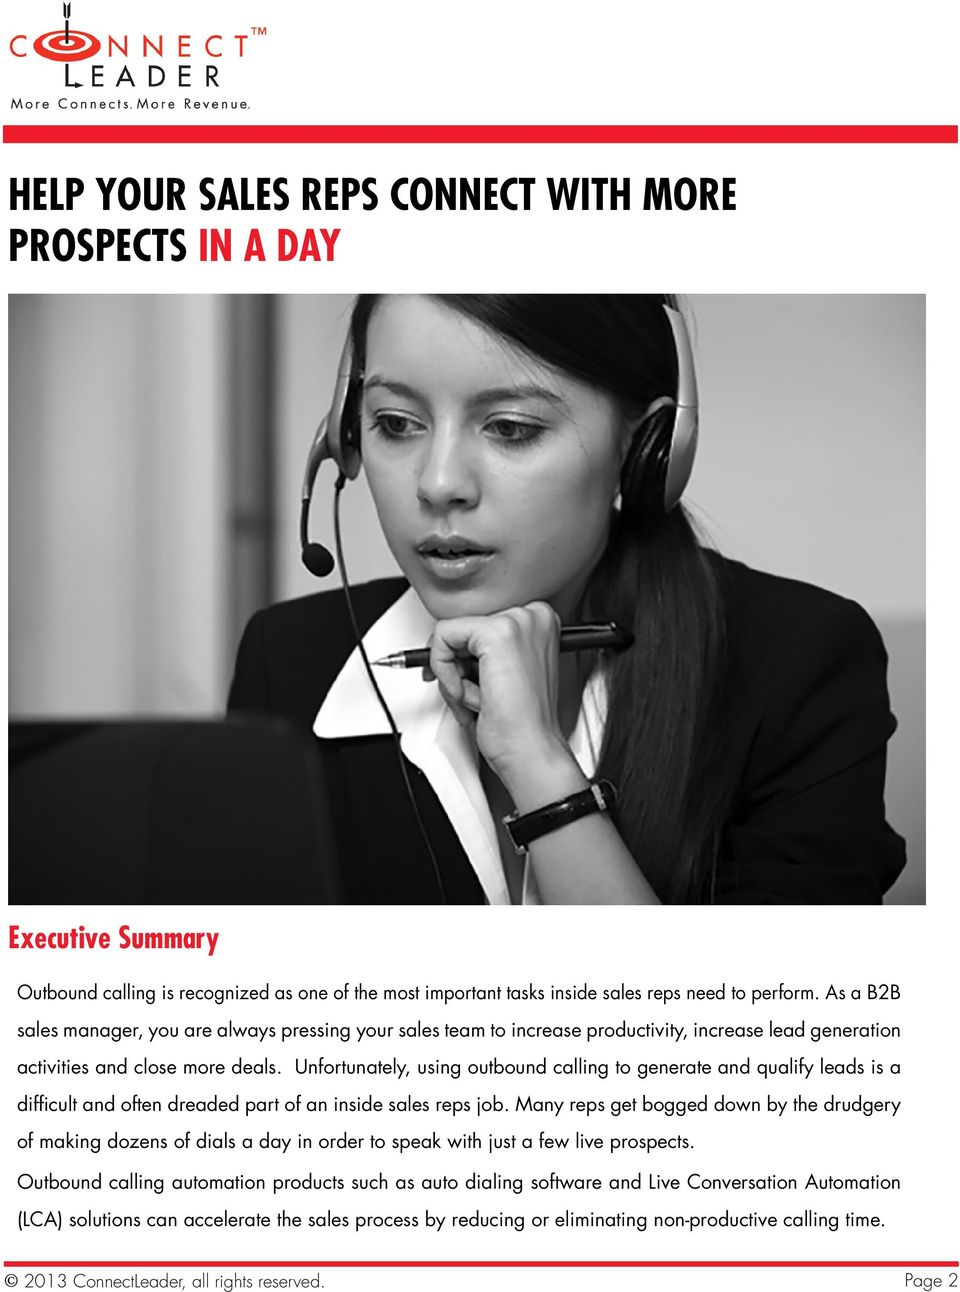 Unfortunately, using outbound calling to generate and qualify leads is a difficult and often dreaded part of an inside sales reps job.